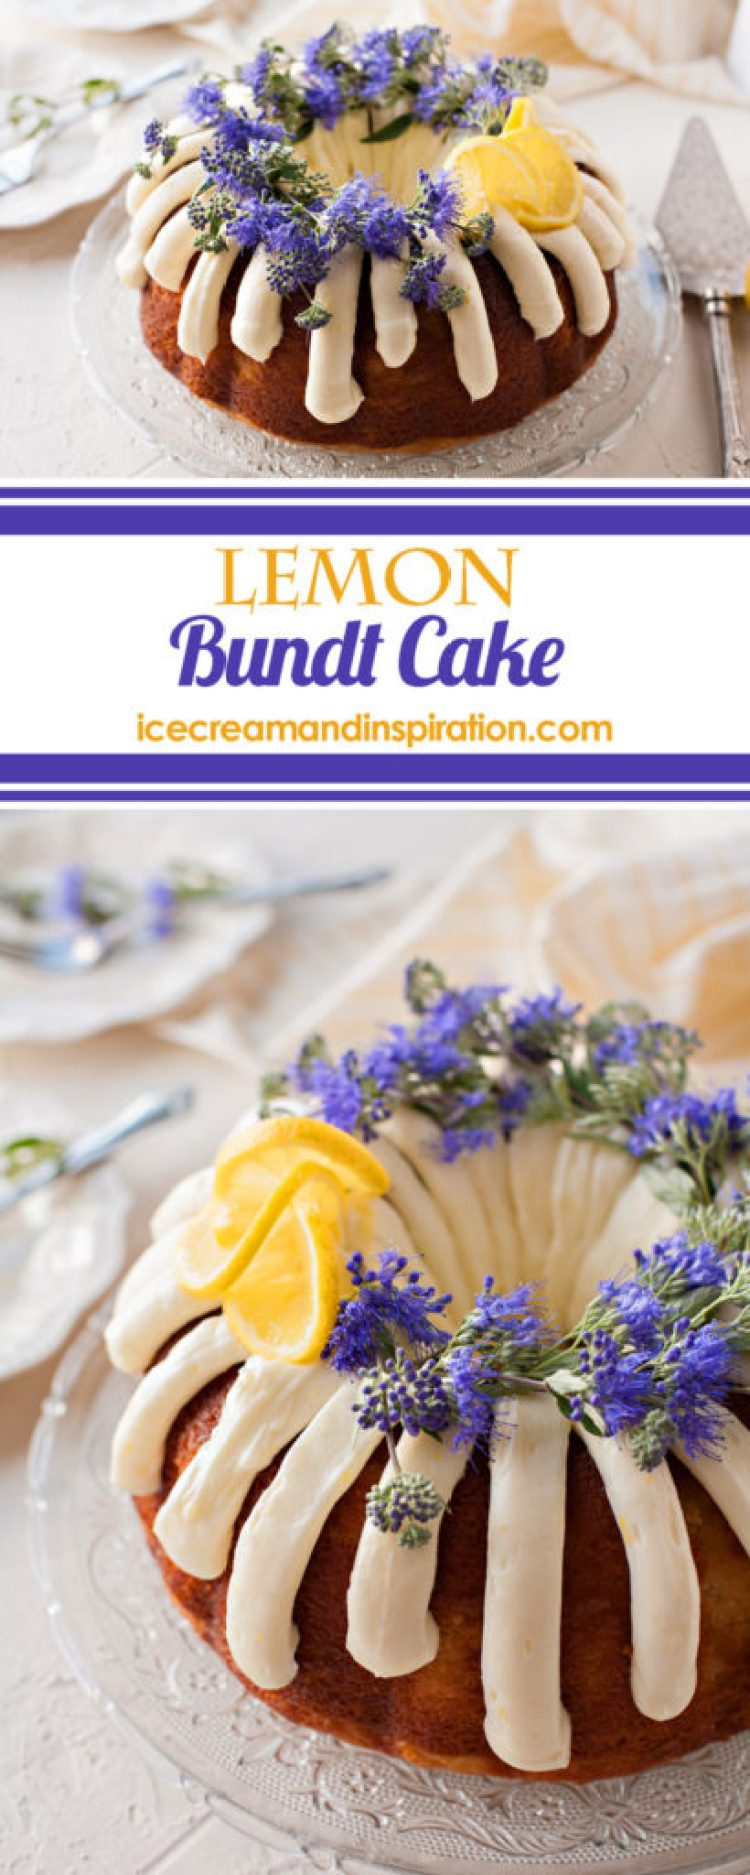 This tender Lemon Bundt Cake made from scratch is full of lemon flavor from real lemons and decorated with lemon cream cheese frosting. It's the perfect cake for any occasion!